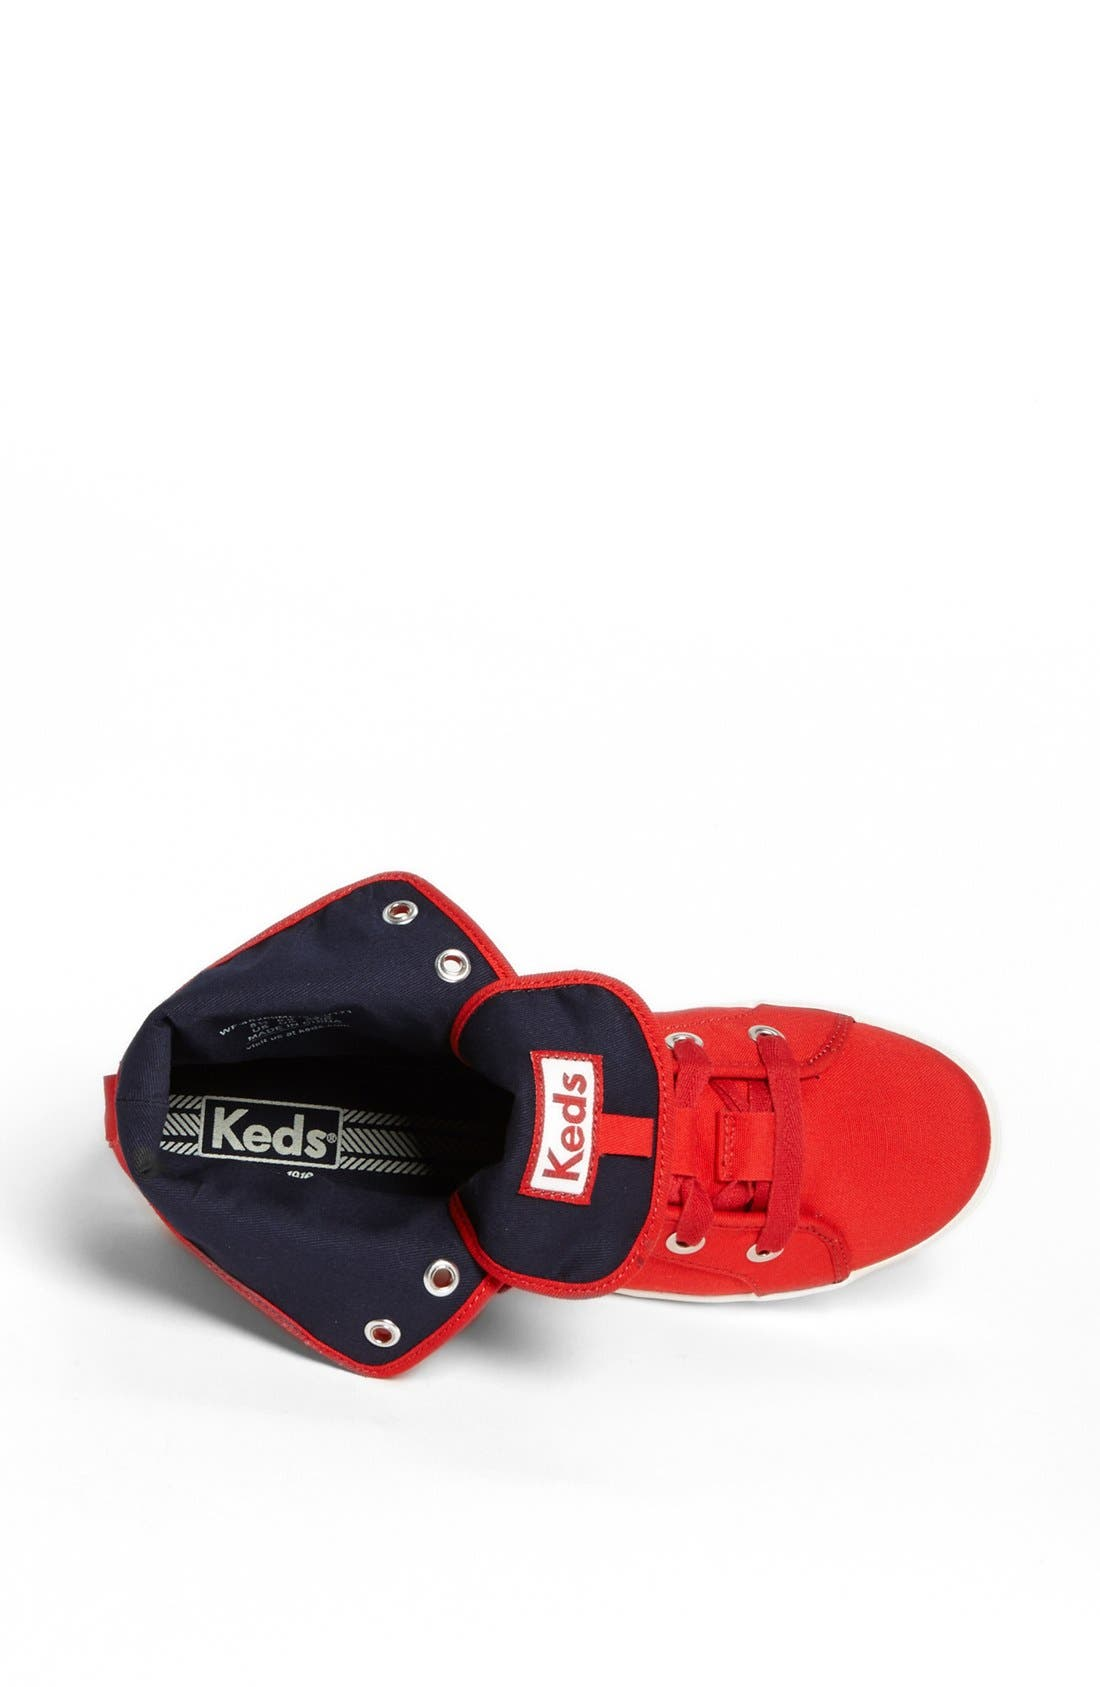 Alternate Image 3  - Keds® 'Rookie - Loop-De-Loop' High Top Sneaker (Women)